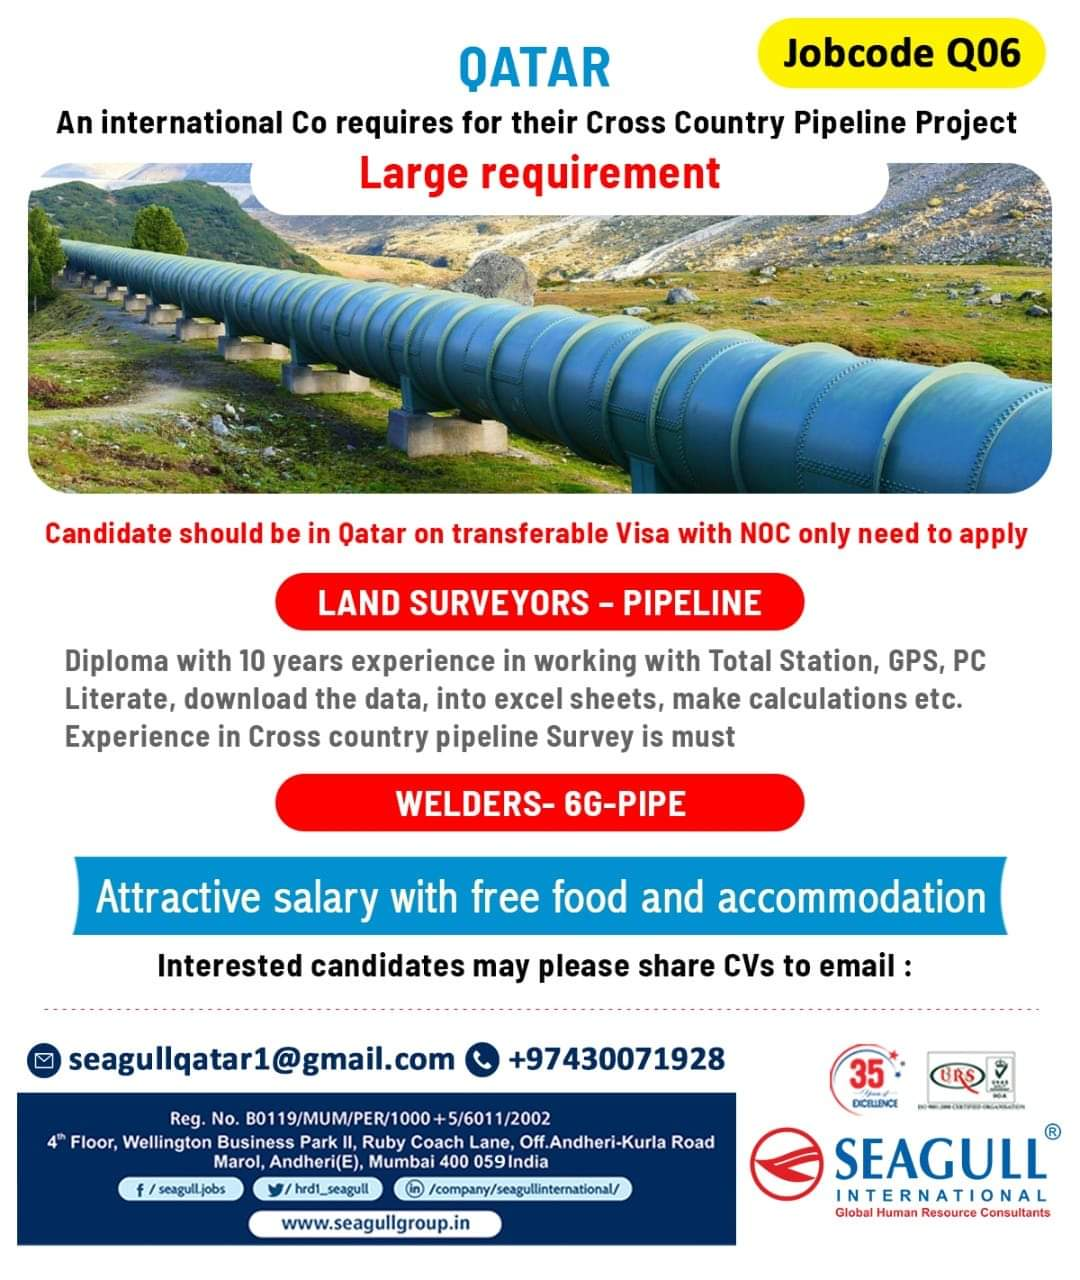 URGENTLY REQUIRED FOR AN INTERNATIONAL CO REQUIRES FOR THEIR CROSS COUNTRY PIPELINE PROJECT